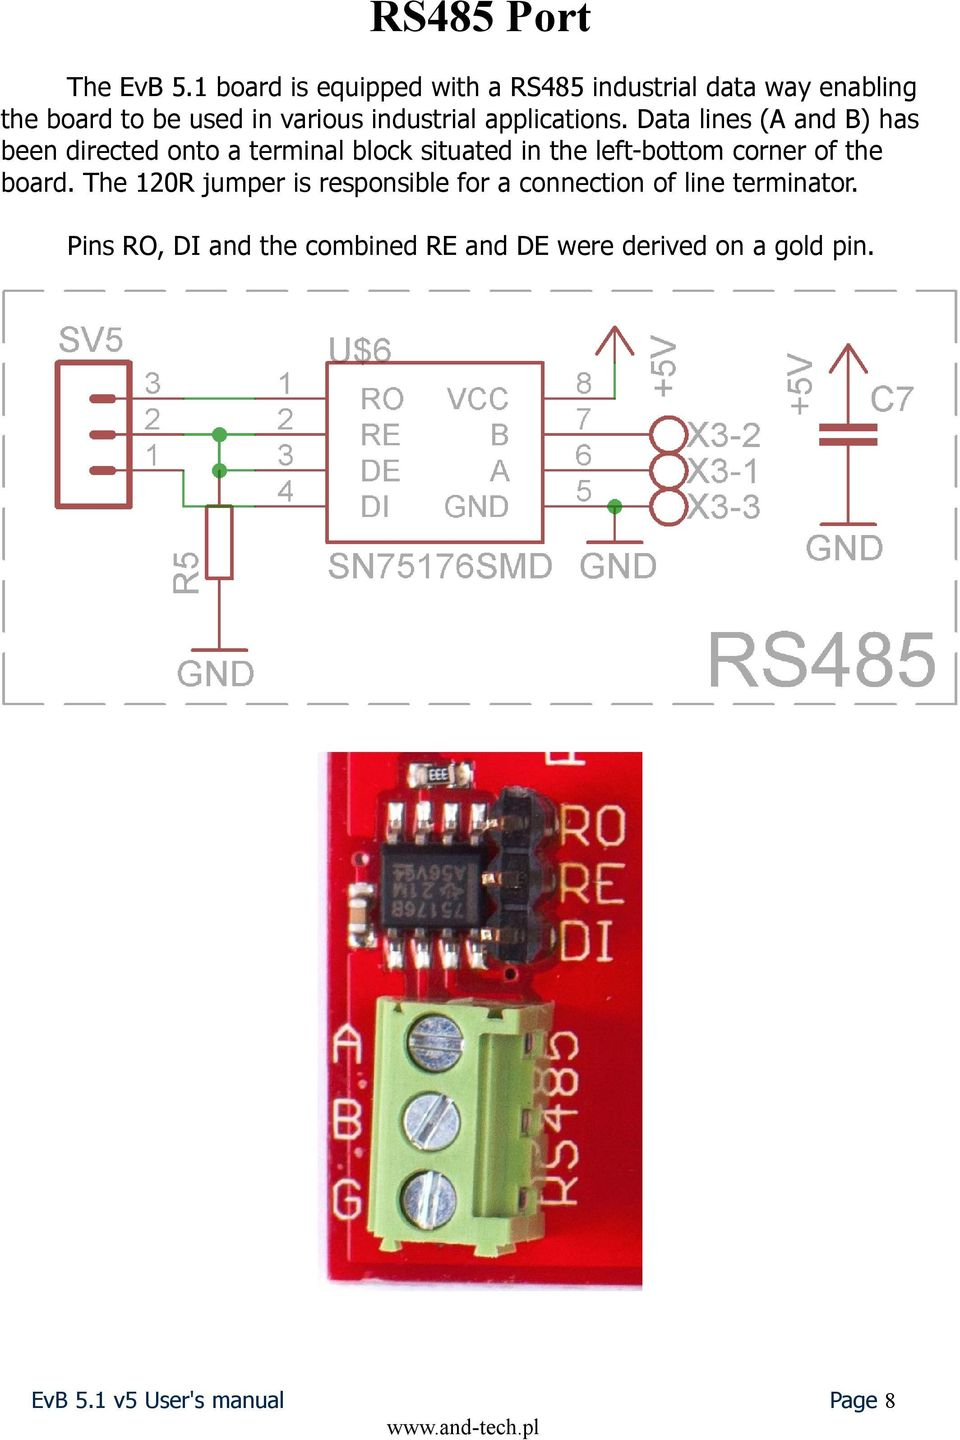 Circuitdiagramtointerfacebuzzerwithavrslicker Evb 51 V5 User S Guide Pdf Industrial Applications